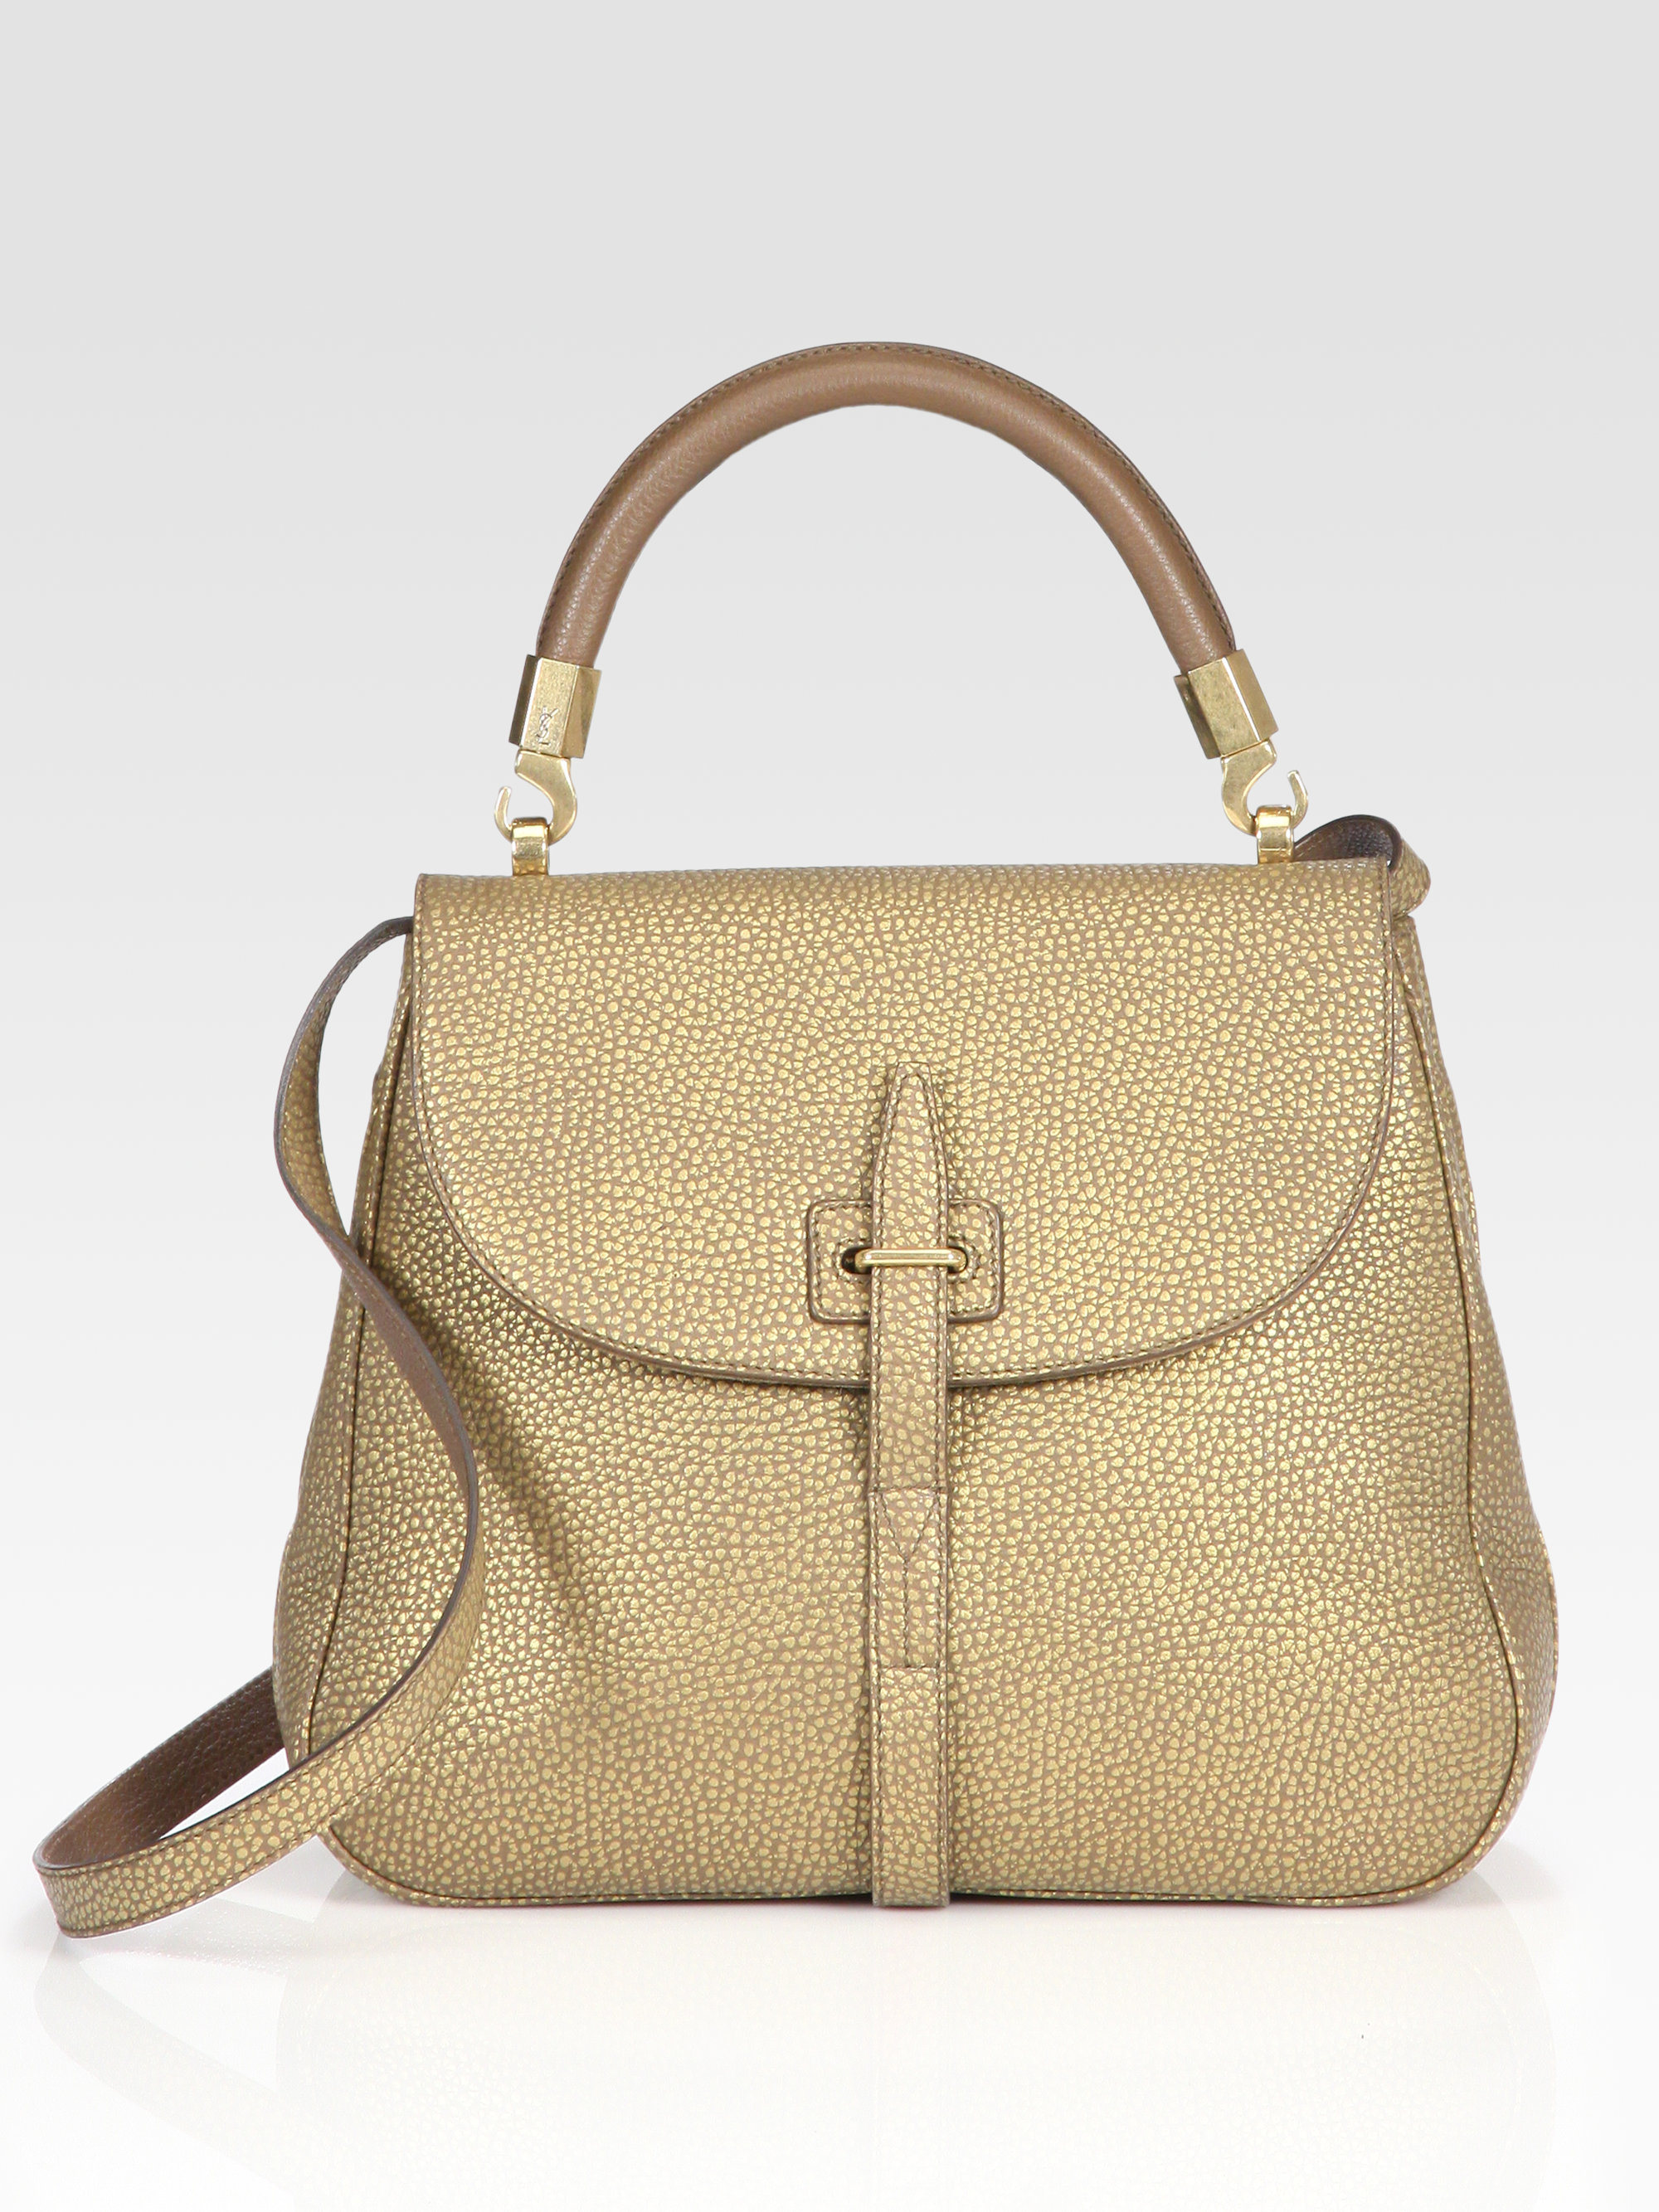 Lyst Saint Laurent Ysl Pebbleleather Flap Bag In Natural